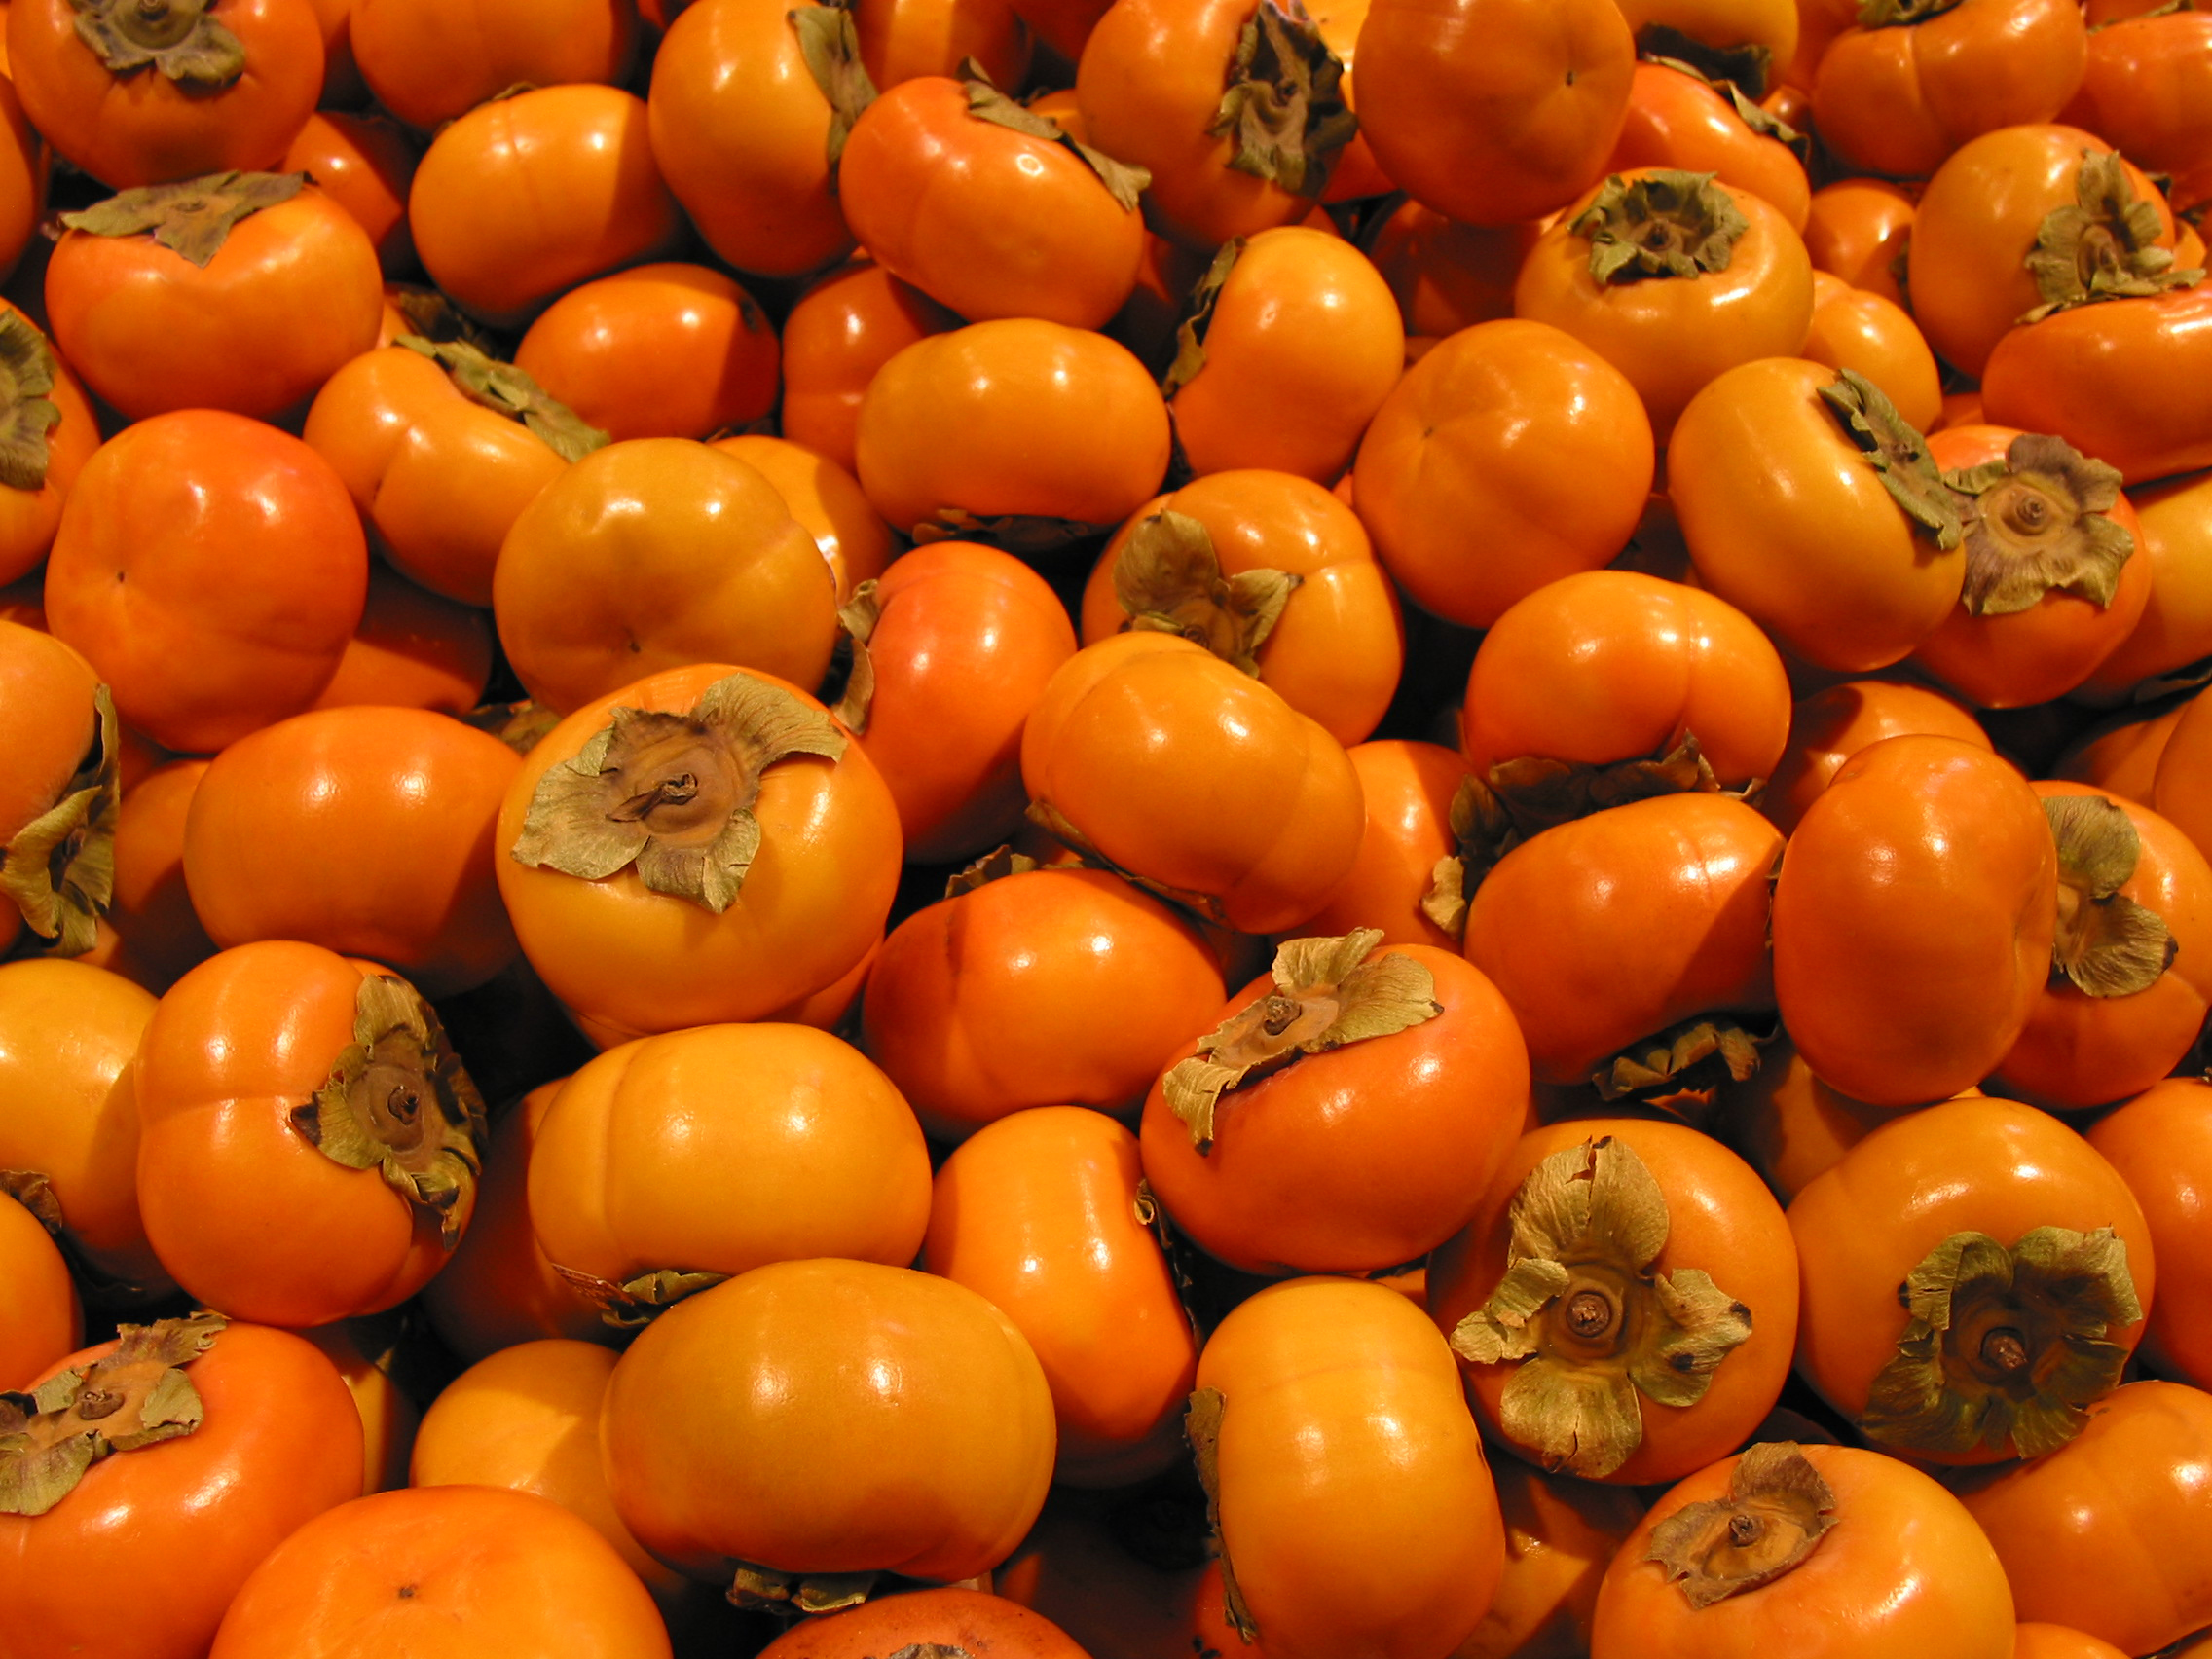 free persimmon photo persimmon picture persimmons image royalty